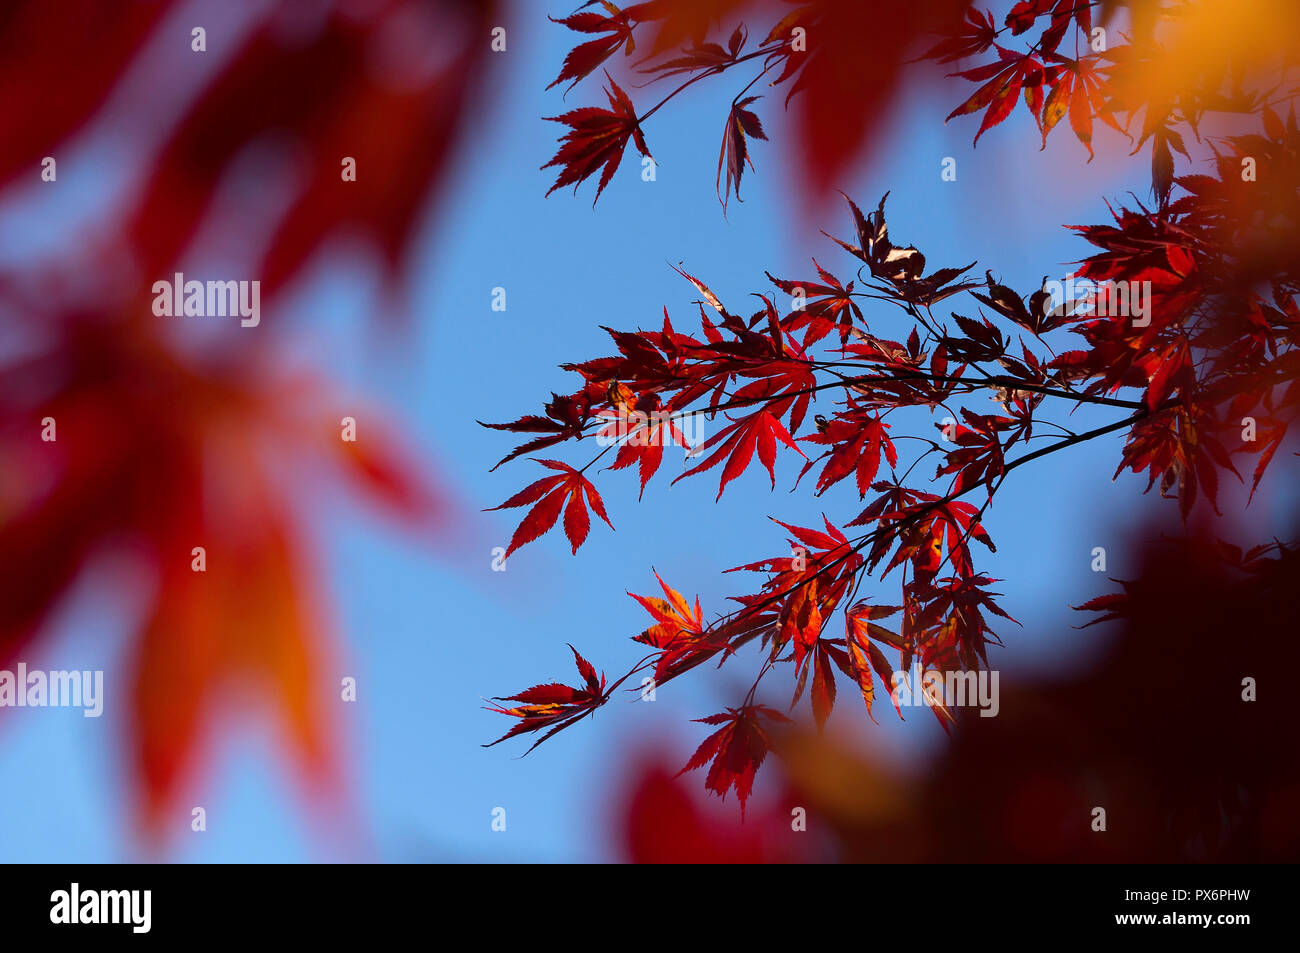 Japanischer Ahorn Wallpaper Branch Wallpaper Stockfotos Branch Wallpaper Bilder Alamy